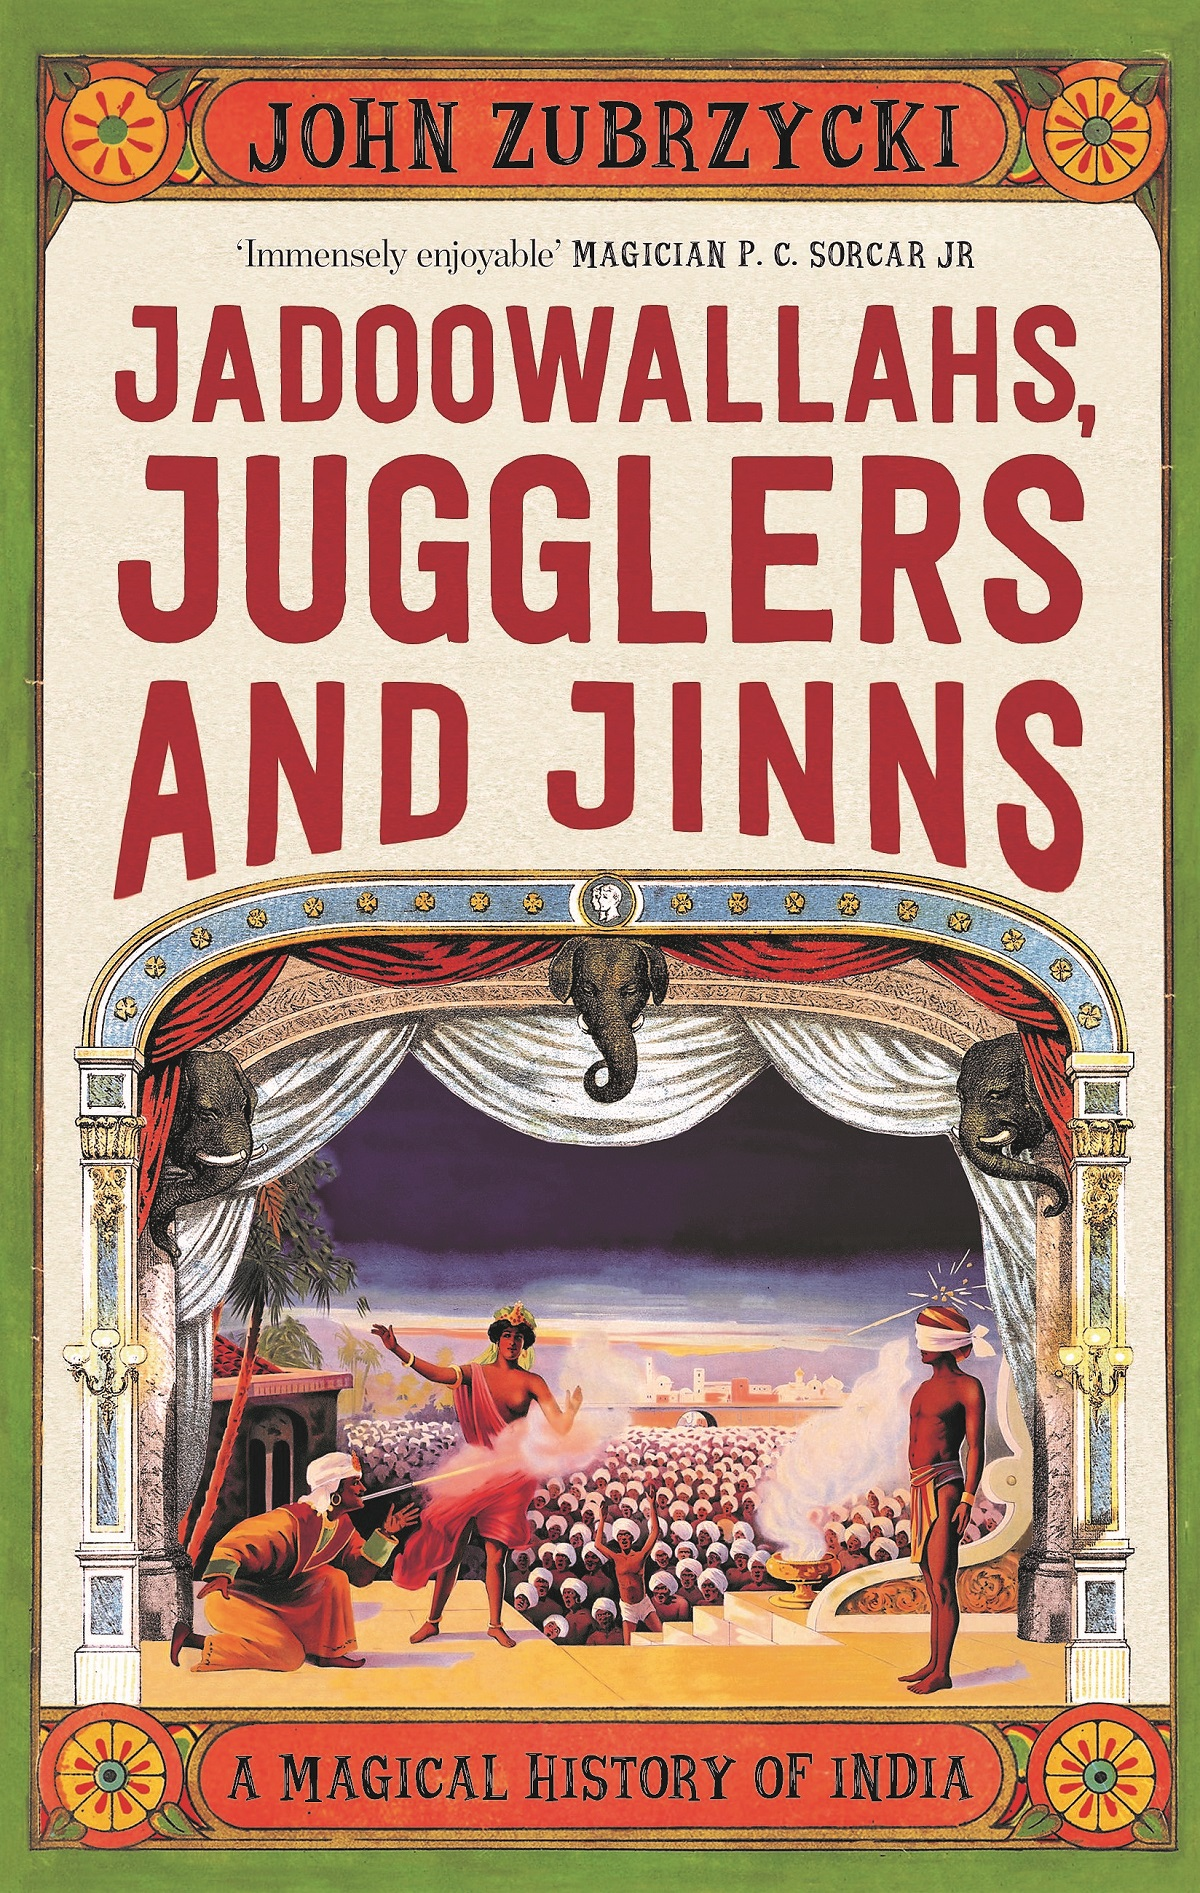 John Zubrzycki <em>Jaddowallahs, Jugglers and Jinns: A Magical History of India</em> Pan Macmillan India, 2018